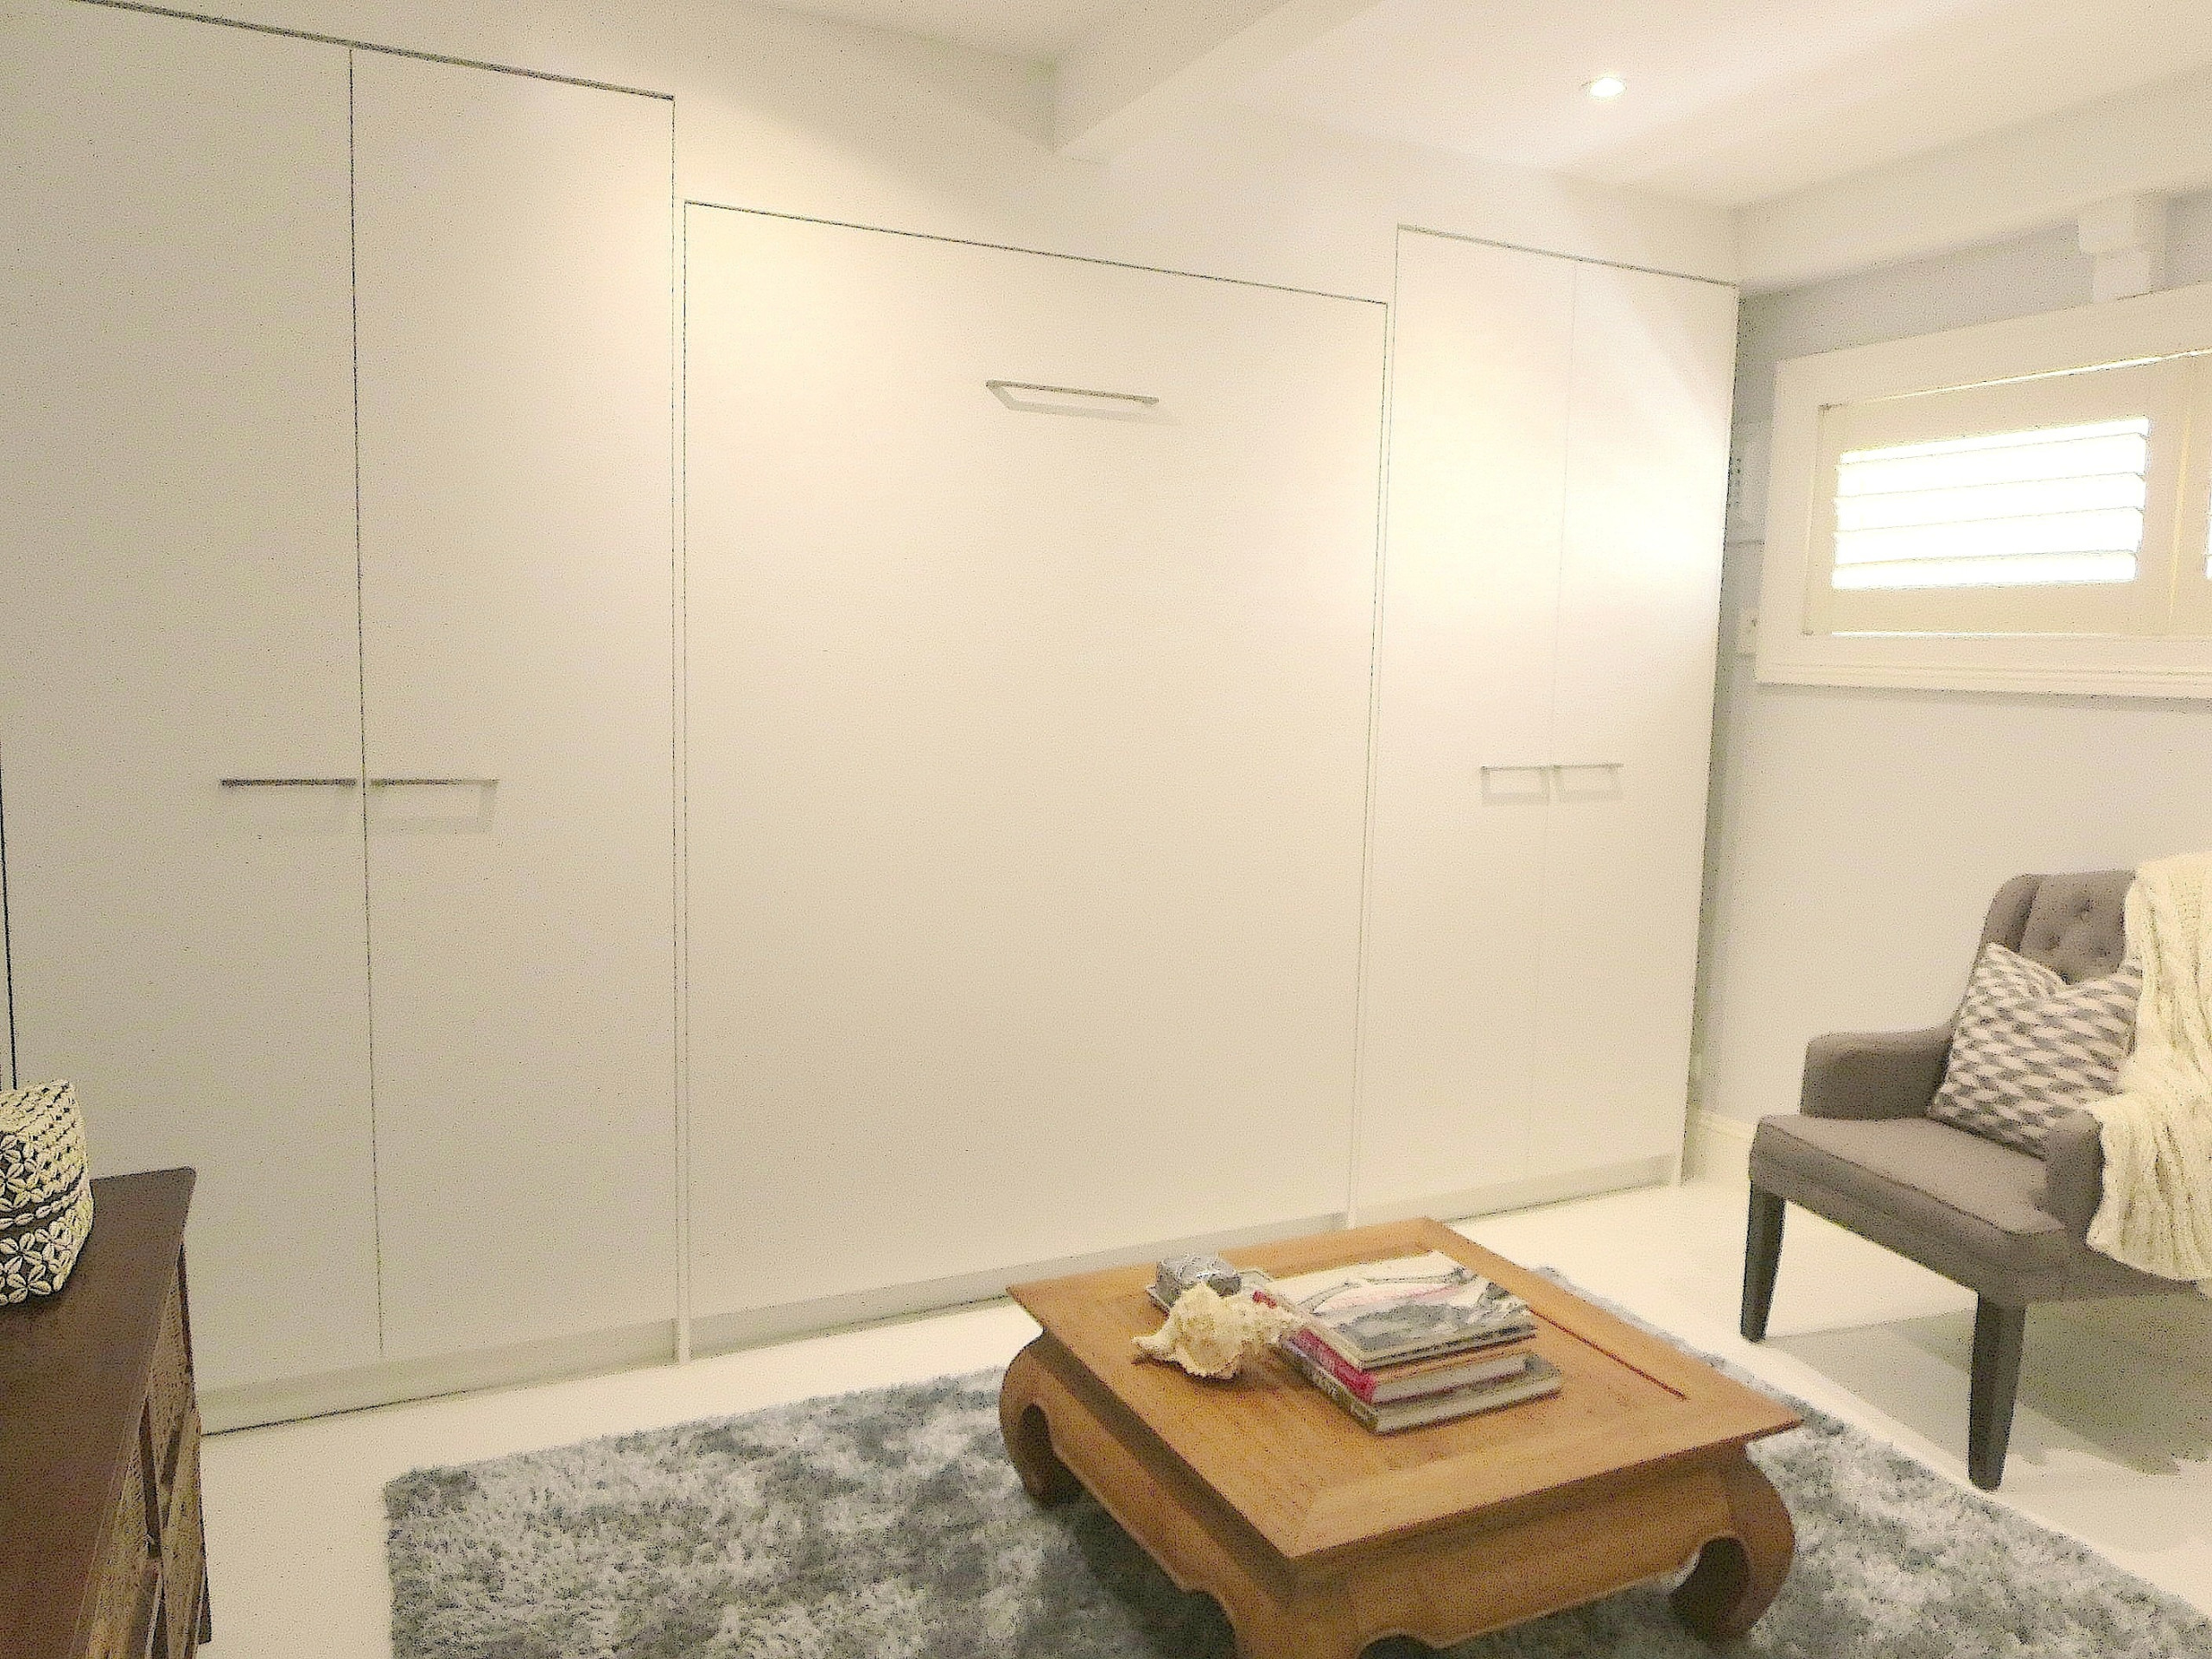 Guest Room - Residence - Crows Nest, Sydney